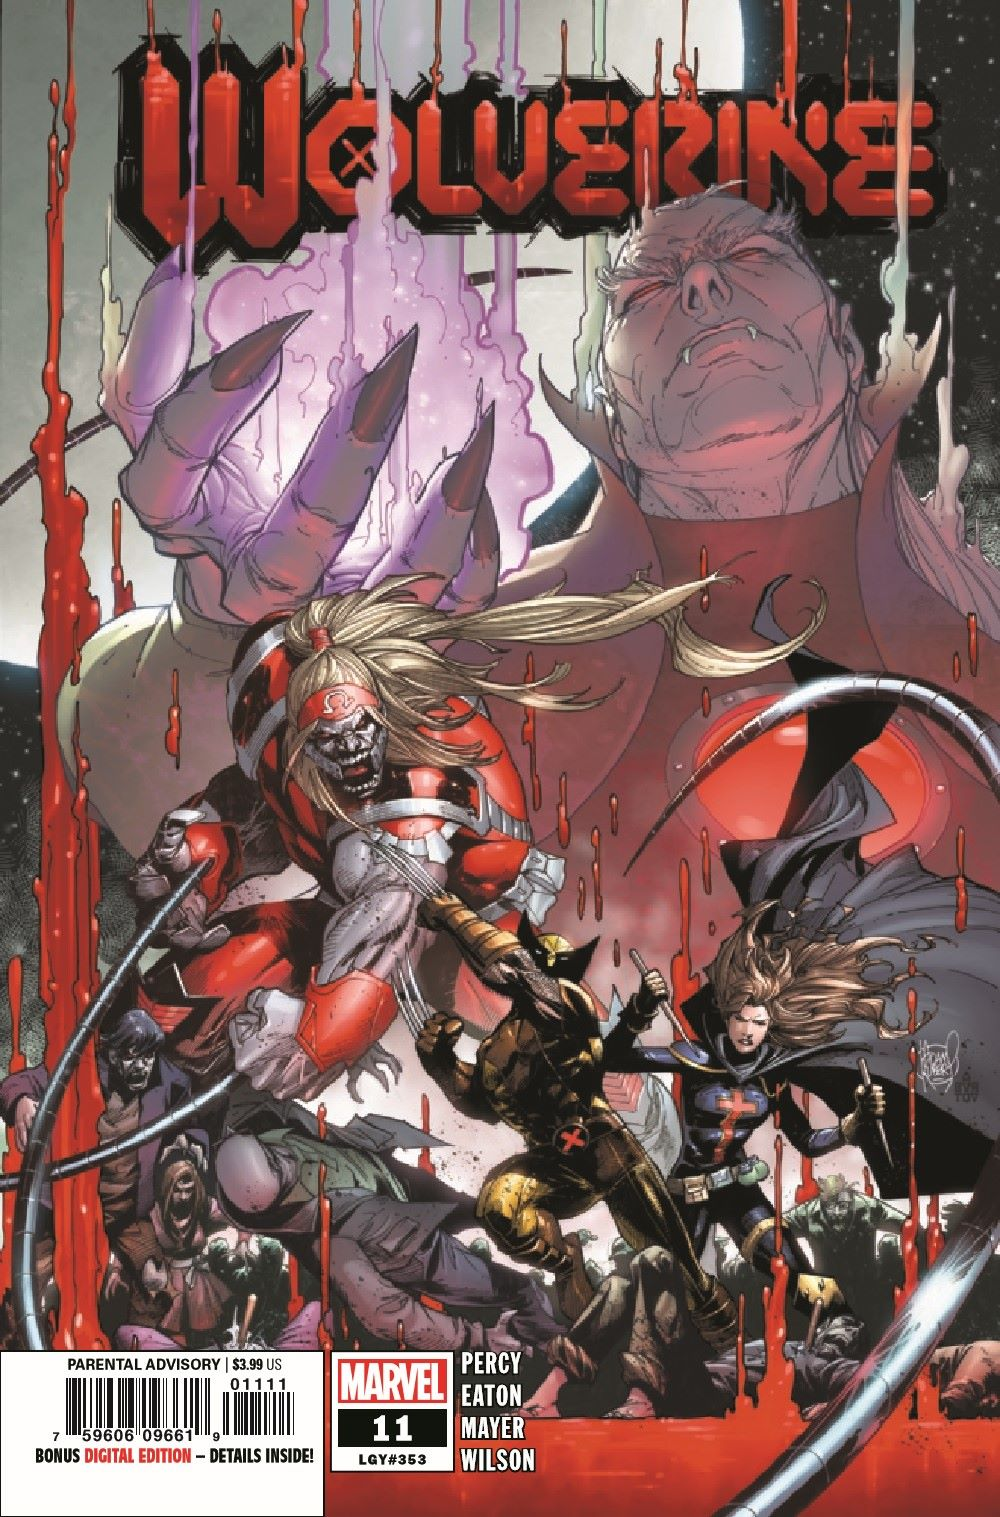 WOLV2020011_Preview-1 ComicList Previews: WOLVERINE #11